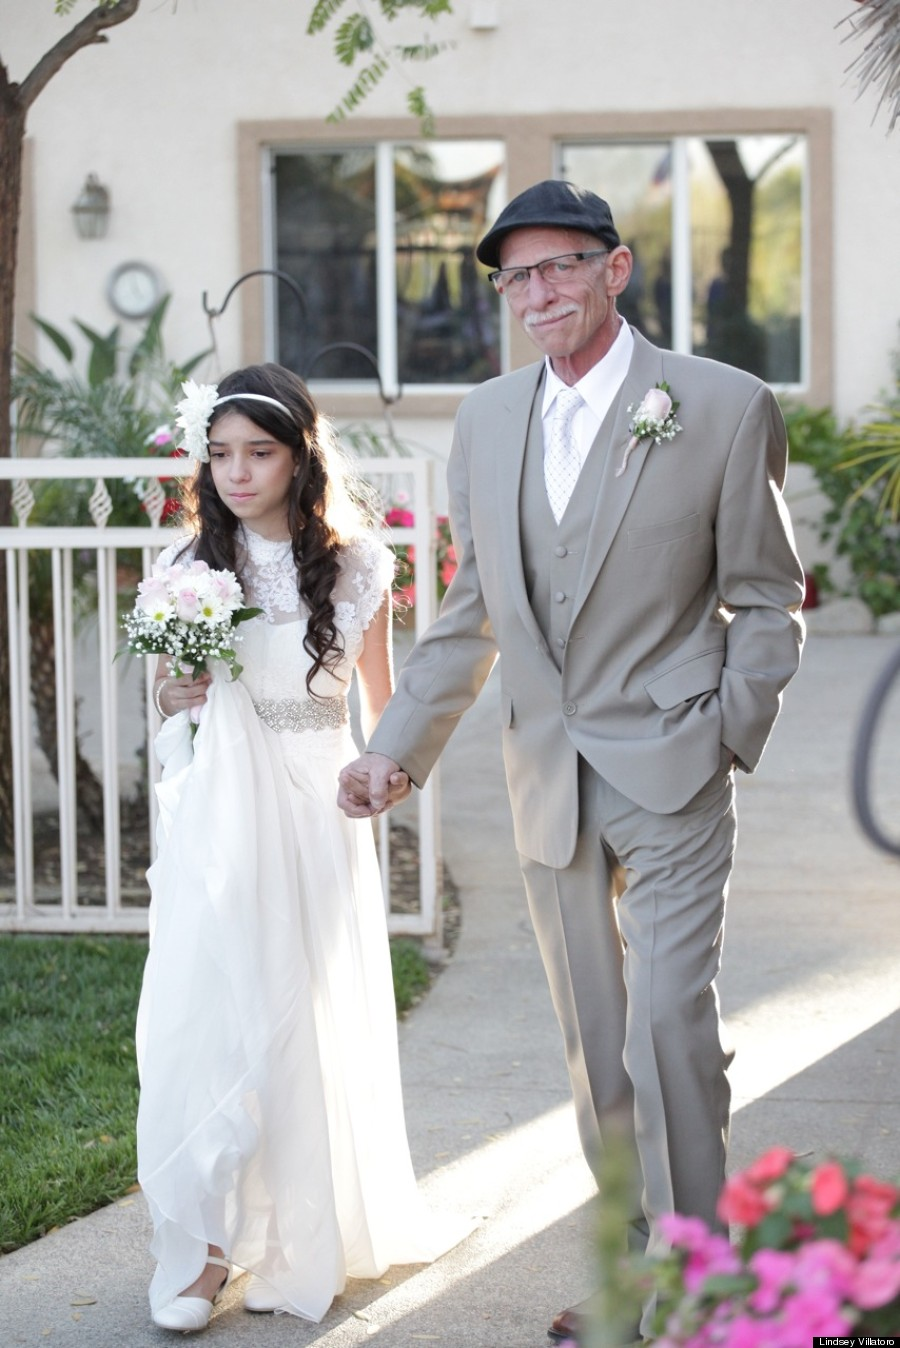 Father Could Walk Her Down The Aisle Photo